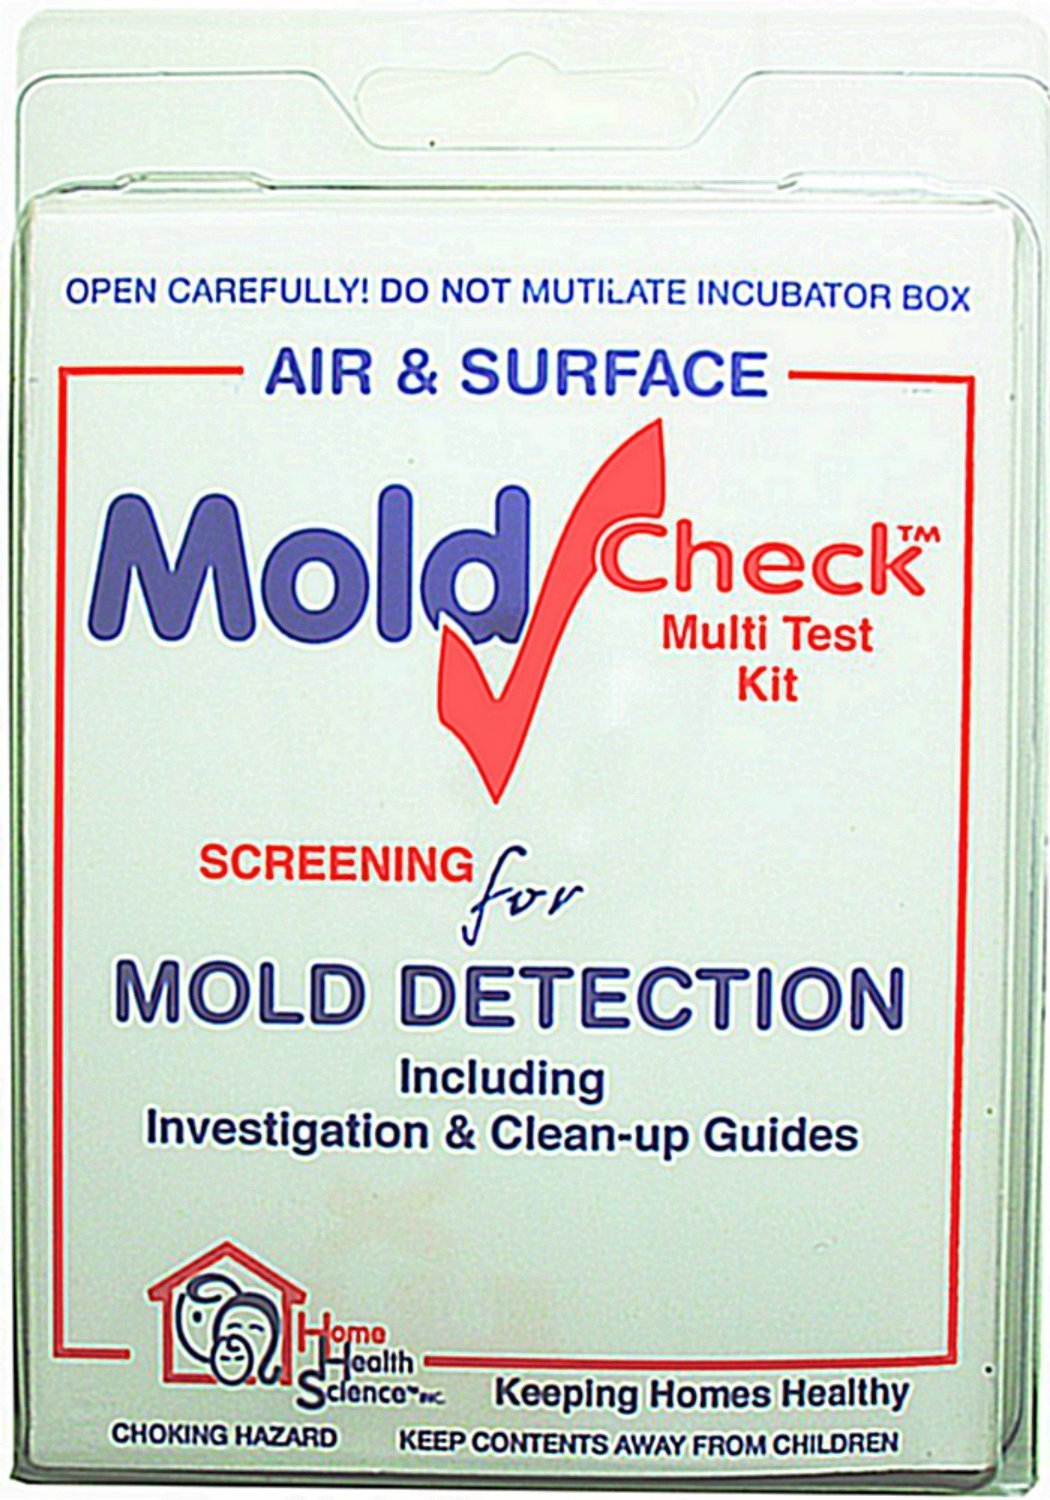 moldcheck mold test kit 10 tests per kit multiple air sampling tests simple visual comparison locate mold source easy to use no lab fee home medical